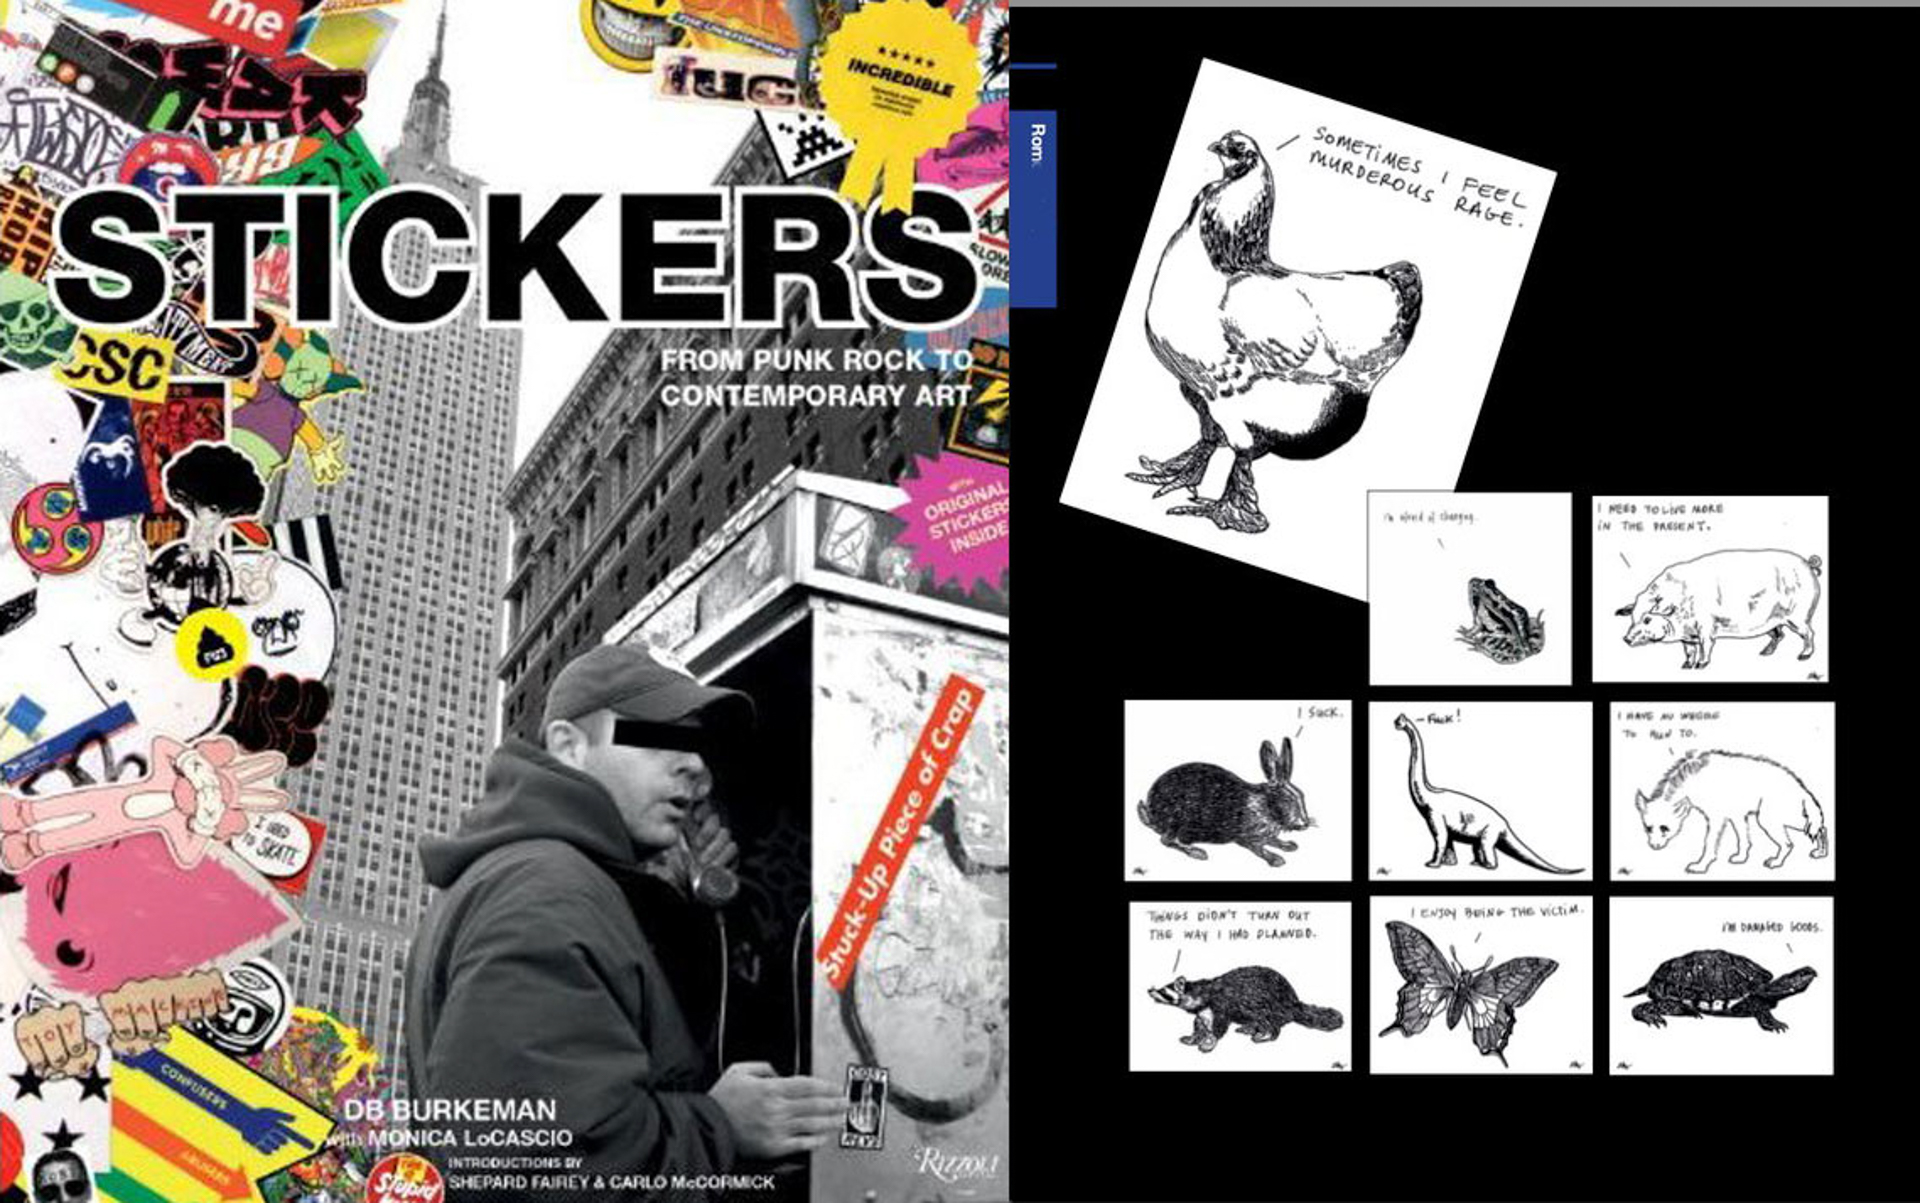 'Stickers: Stuck-Up Piece of Crap: From Punk Rock to Contemporary Art Paperback' (Rizzoli, 2010)